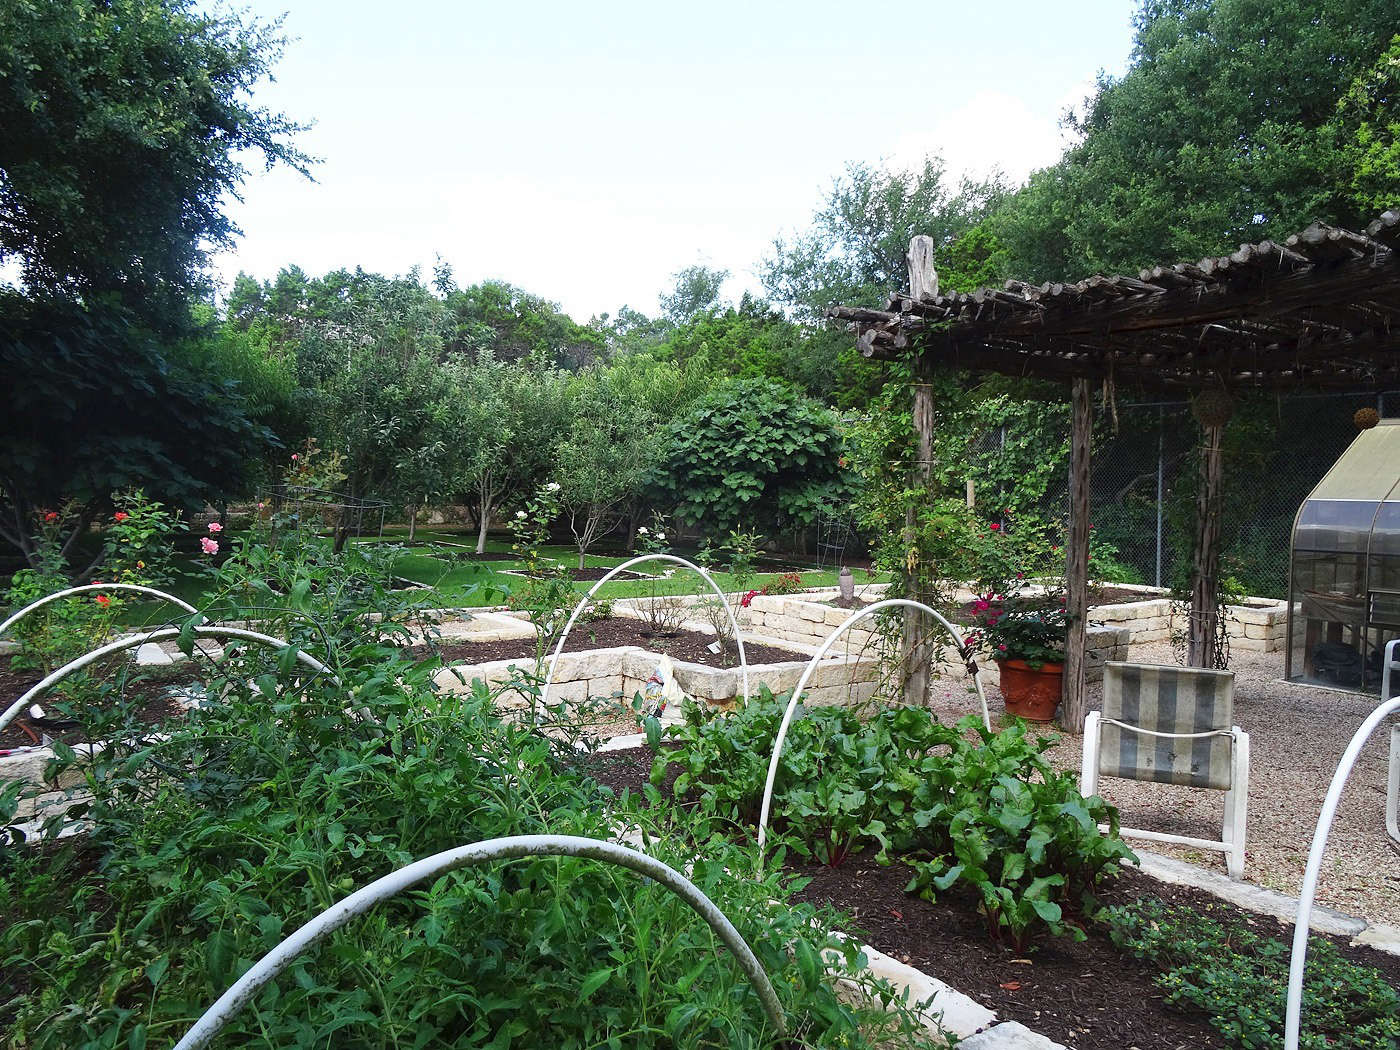 Tait Moring Landscape Architect submitted thisOrchard and Vegetable Garden in Westlake Hills, Texas, which was chosen by Rita Konig: &#8